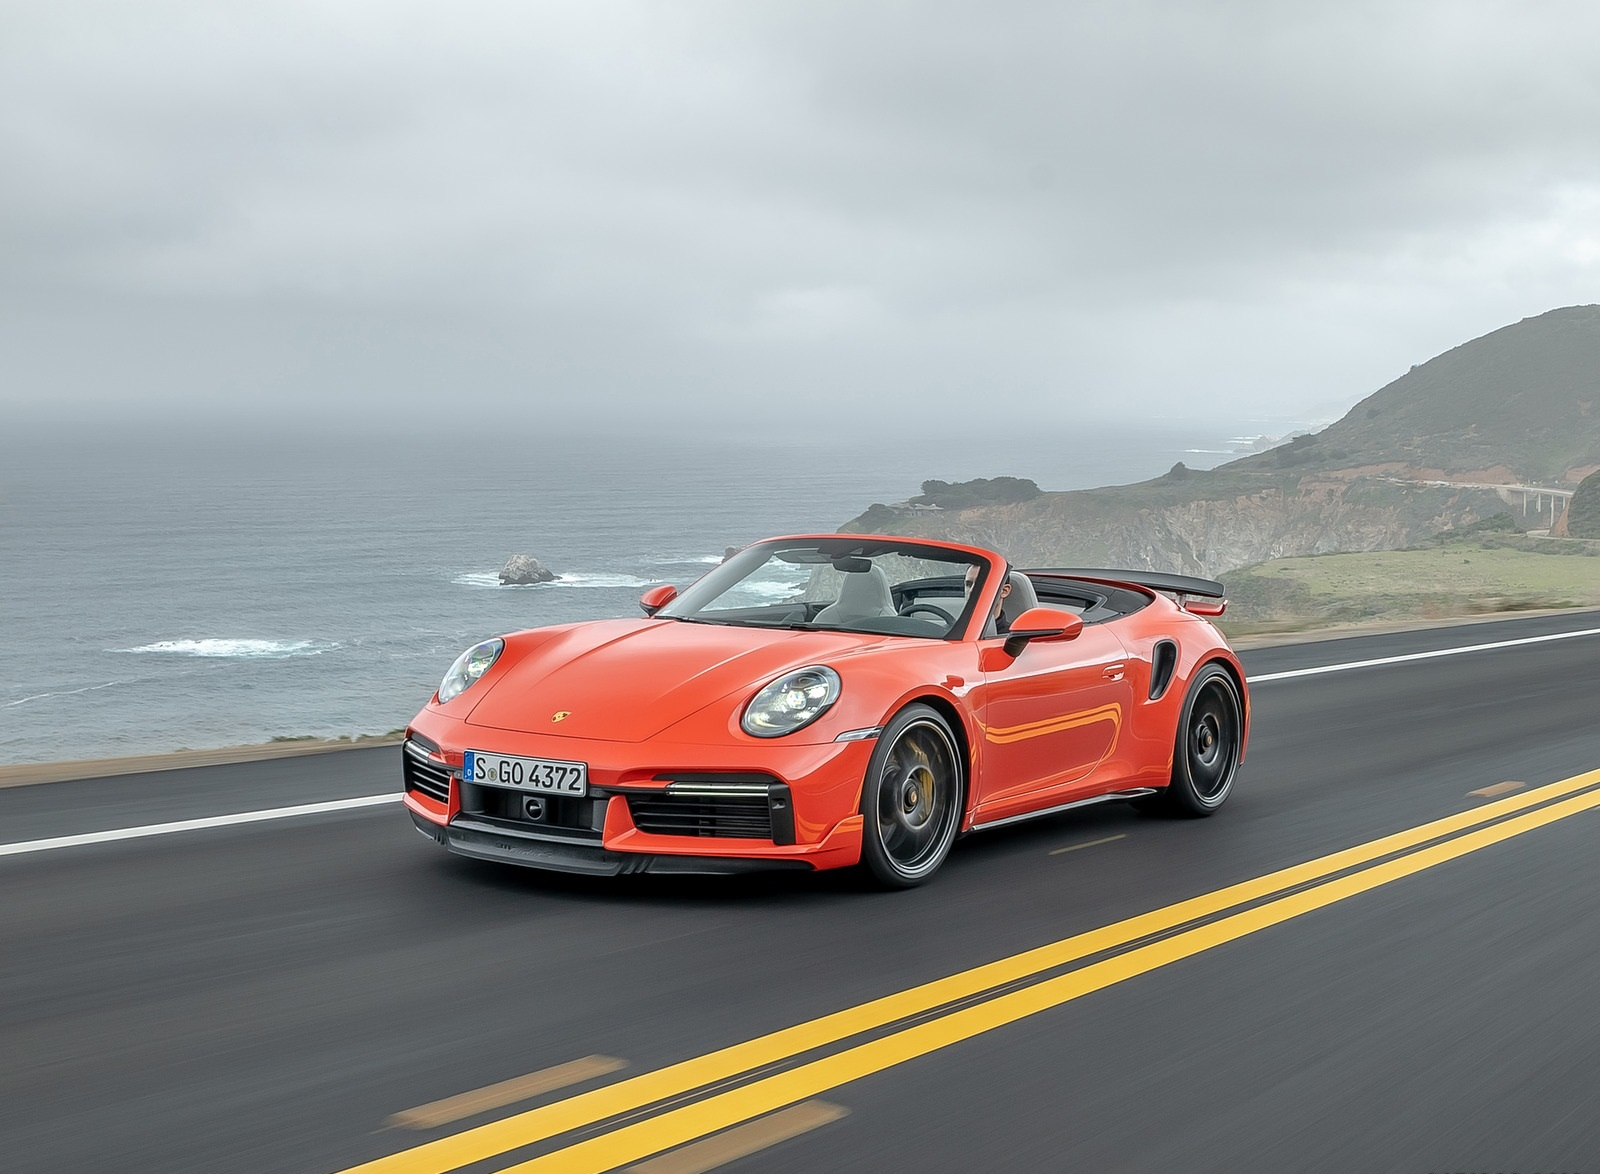 2021 Porsche 911 Turbo S Cabriolet Wallpapers 99 Hd Images Newcarcars